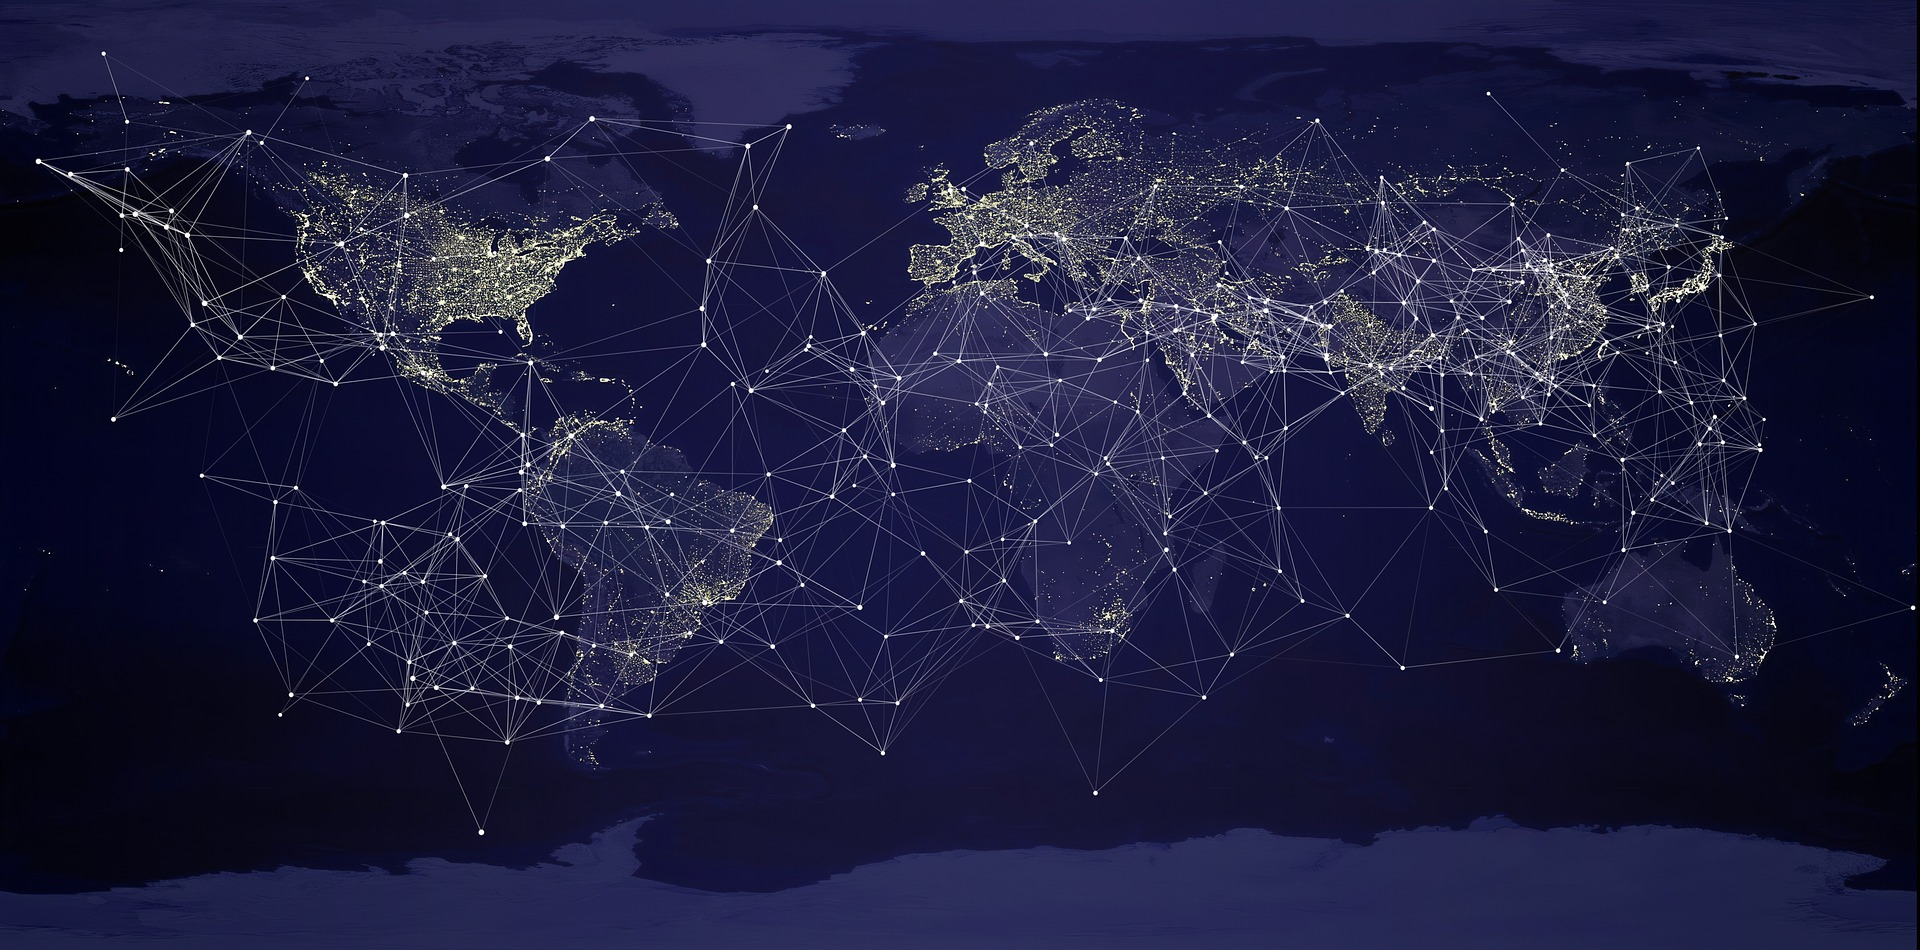 A map of the world at night with a network of bright lines between countries